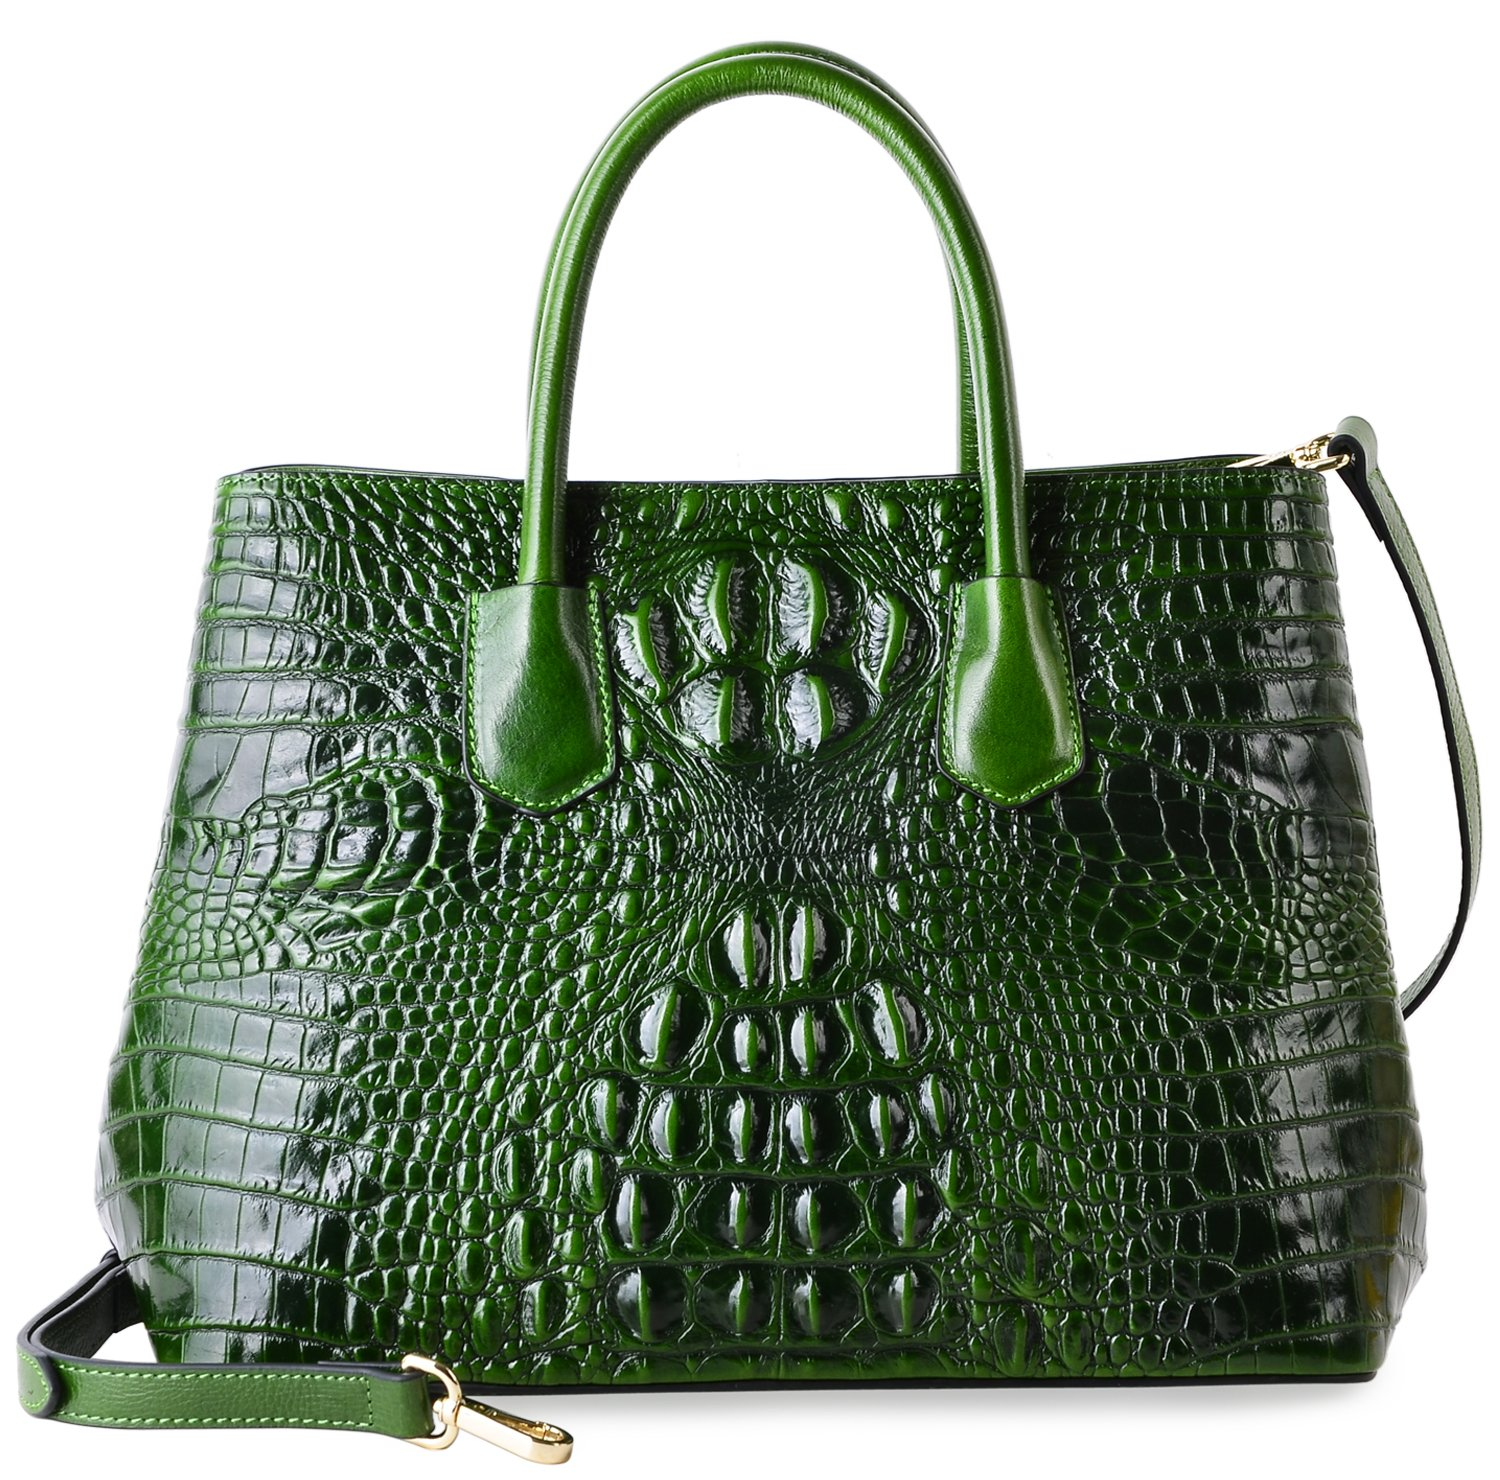 PIFUREN Women's Crocodile Embossed Handbags Genuine Leather Top Handle Purses E72110(Big Size, Green)